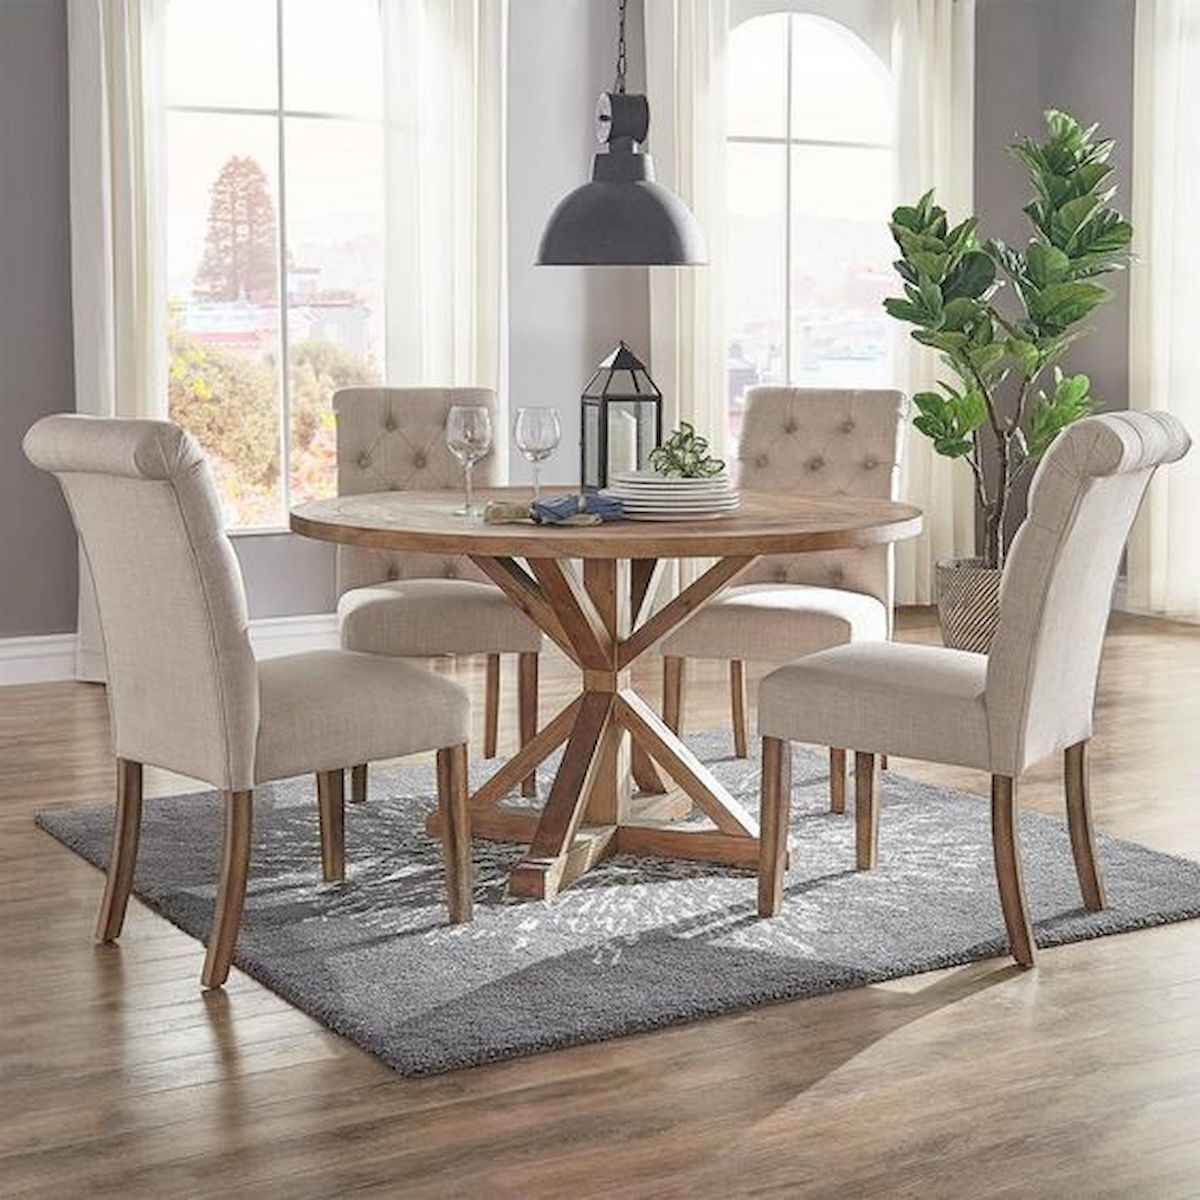 55 Stunning DIY Projects Furniture Tables Dining Rooms Design Ideas (9)